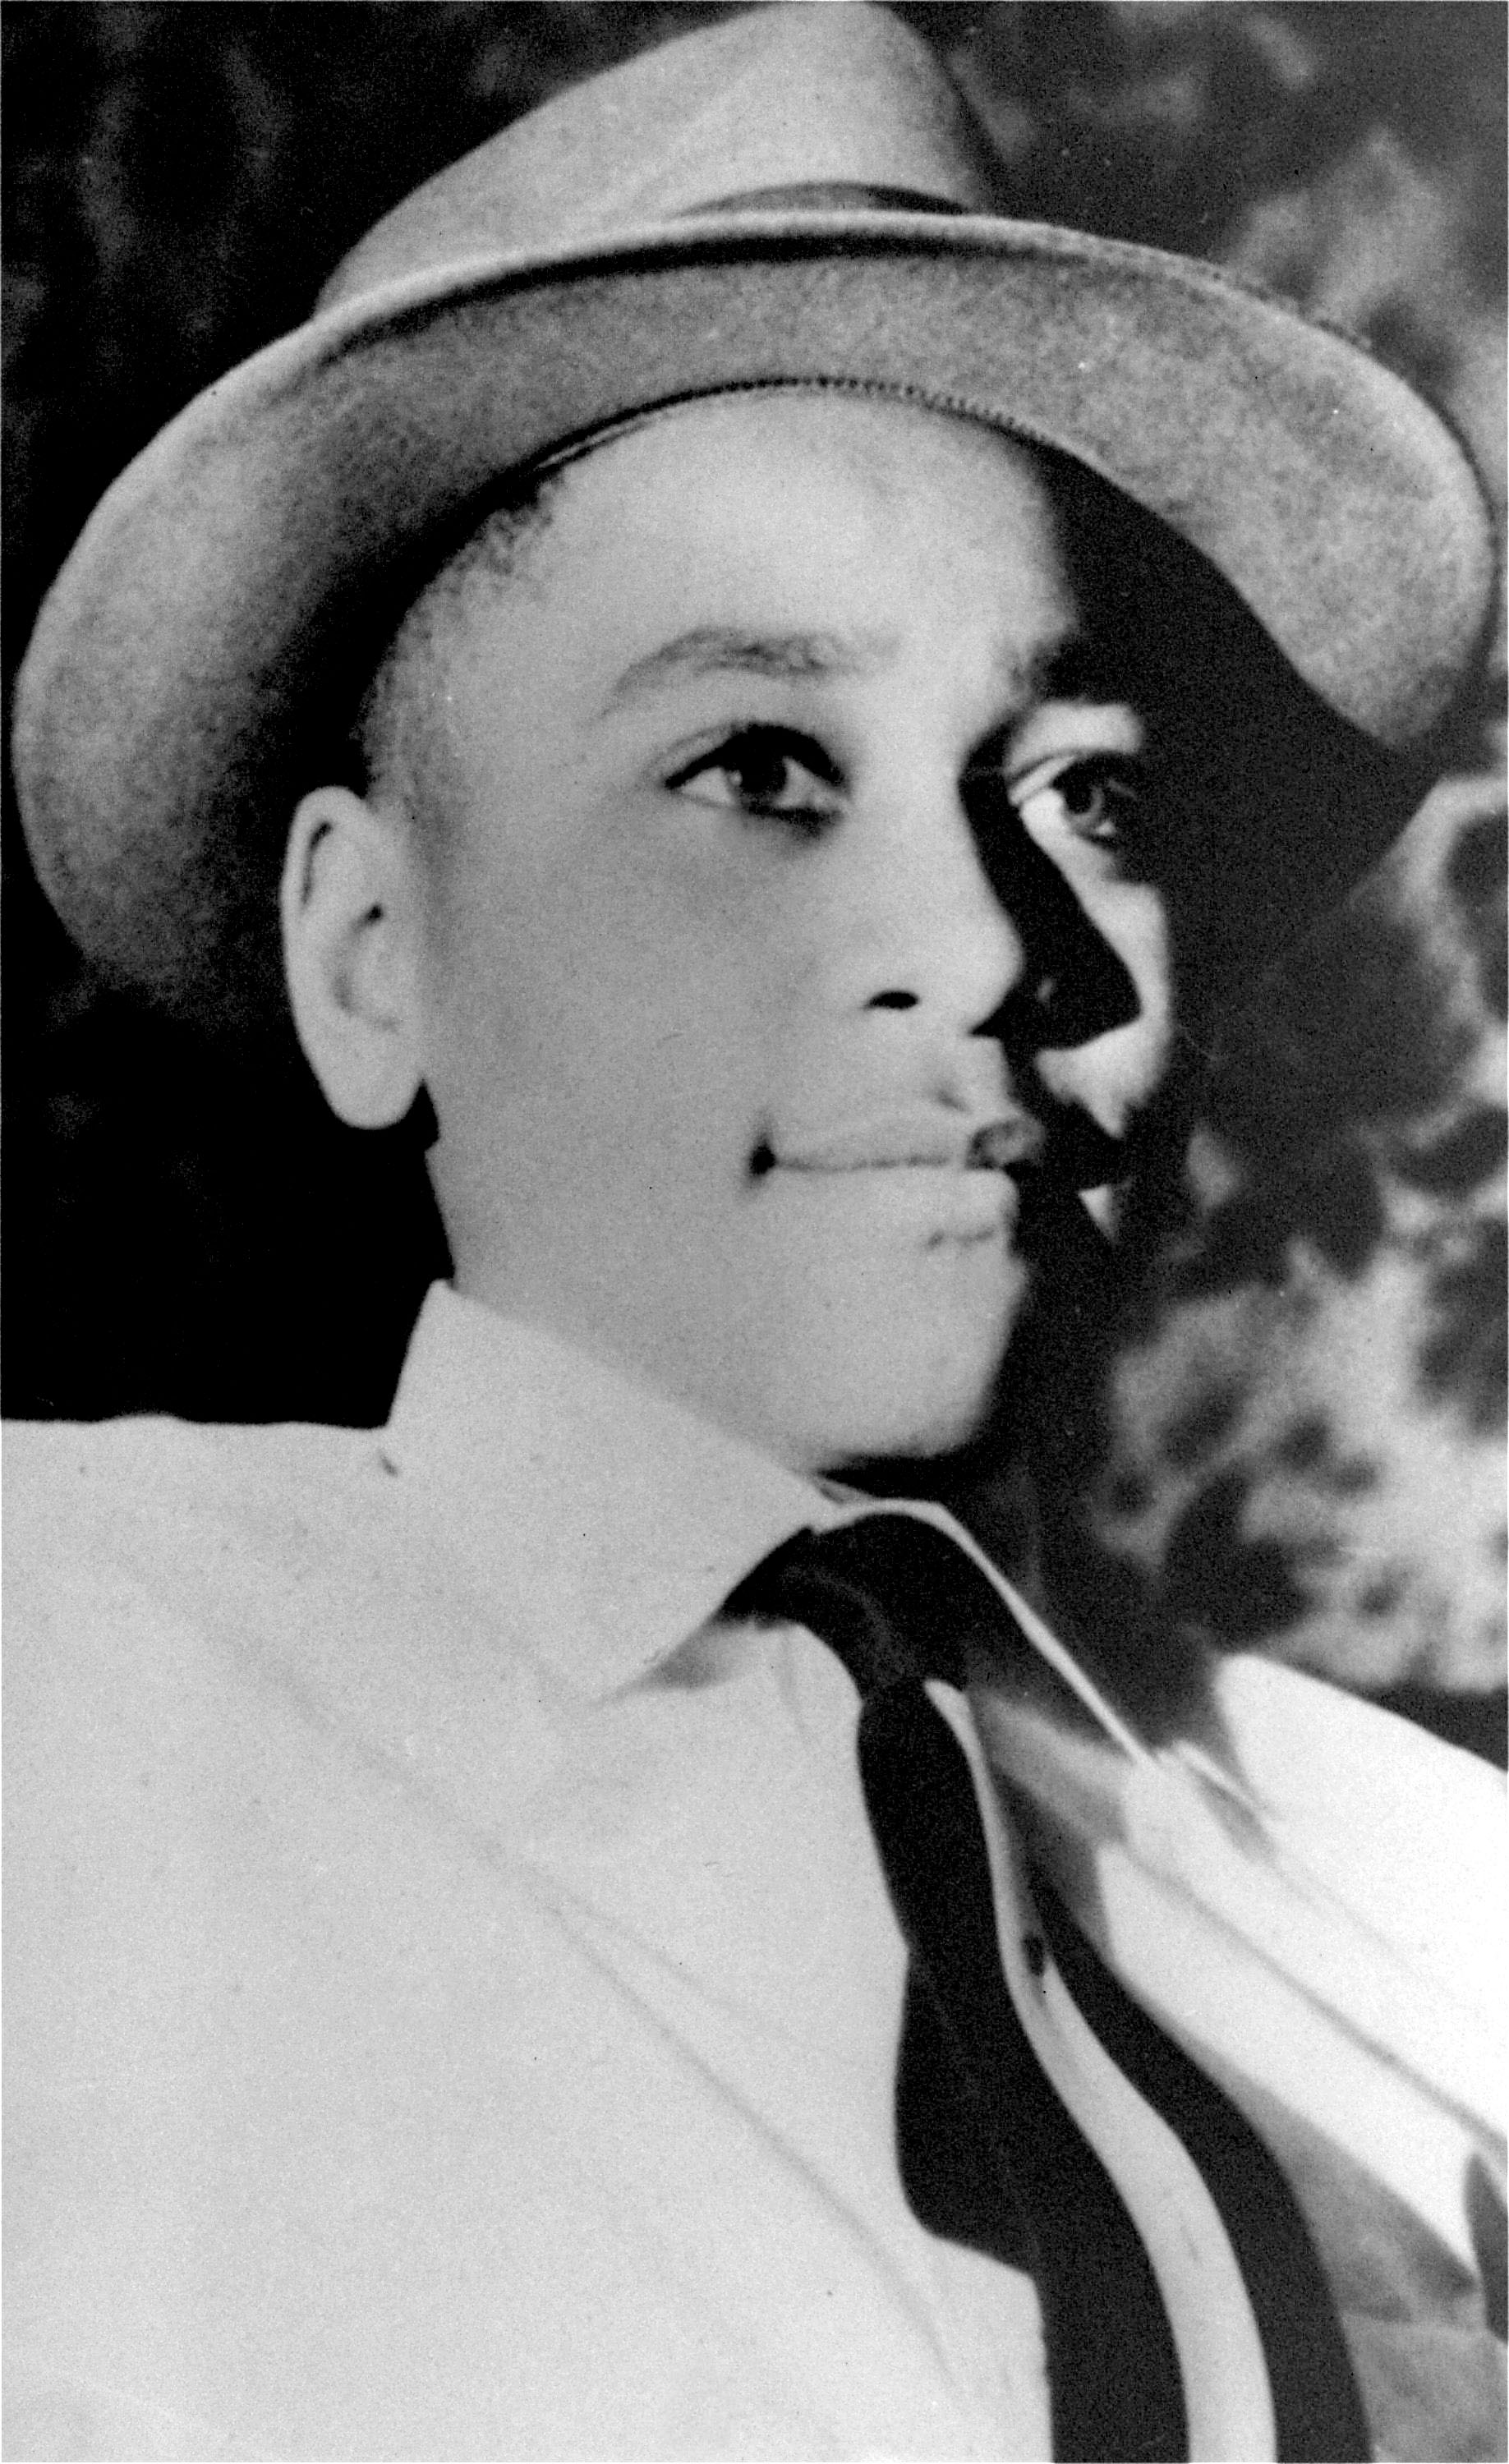 An undated portrait of Emmett Louis Till. (AP Photo)